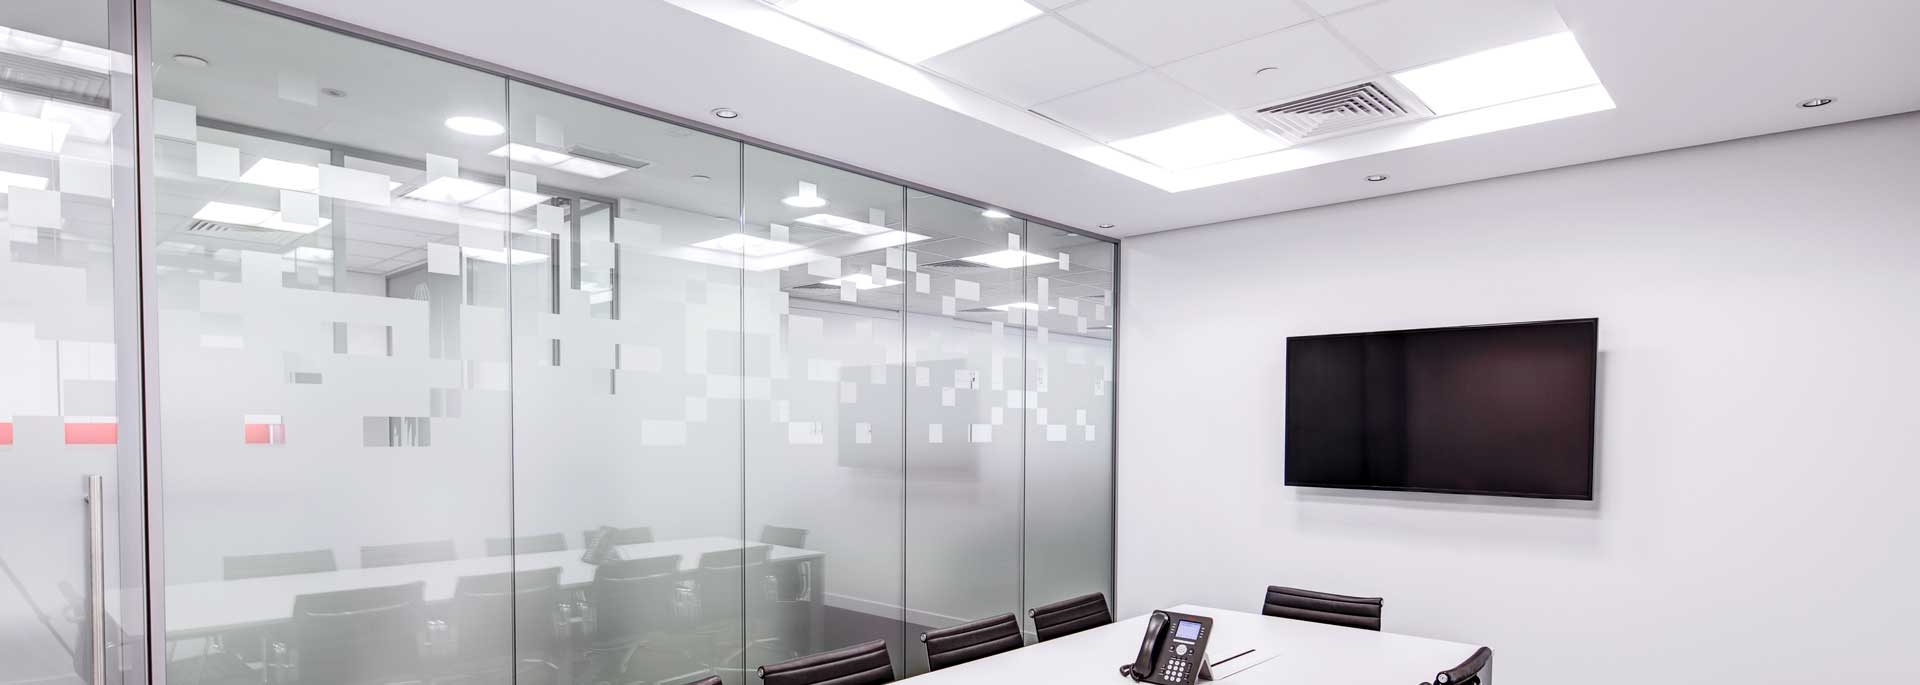 Airius-LED-Office-Light-Installation-1